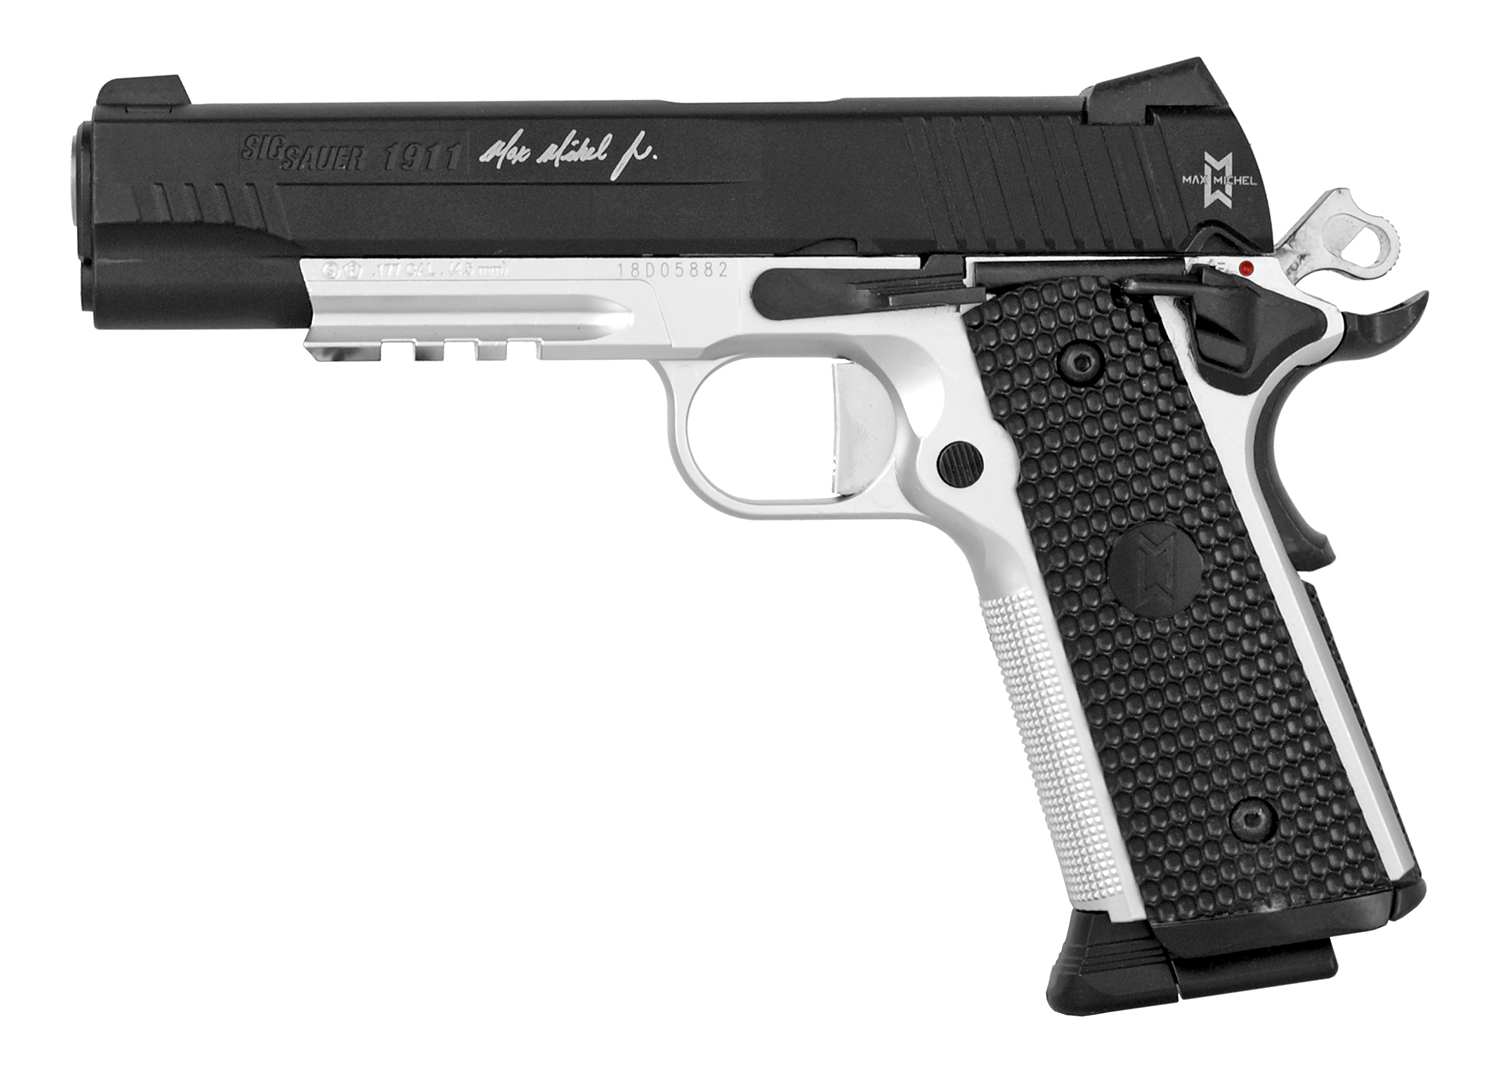 Sig Sauer 1911 Max Michel Jr. .177 Cal. Air Pistol - Refurbished